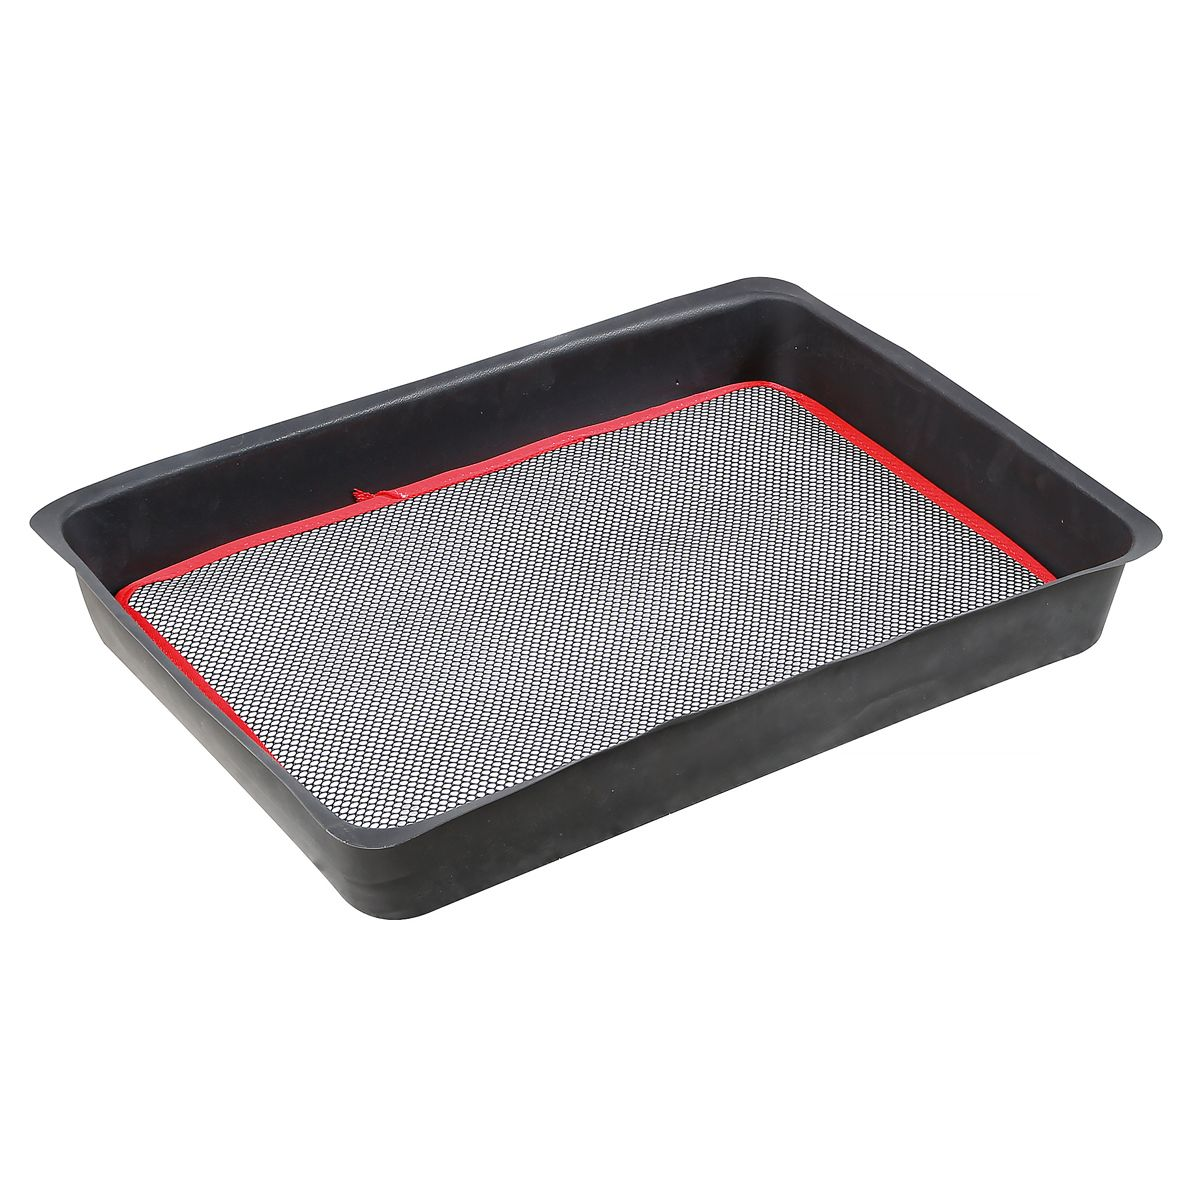 SIP Oil Soak Up Tray Kit